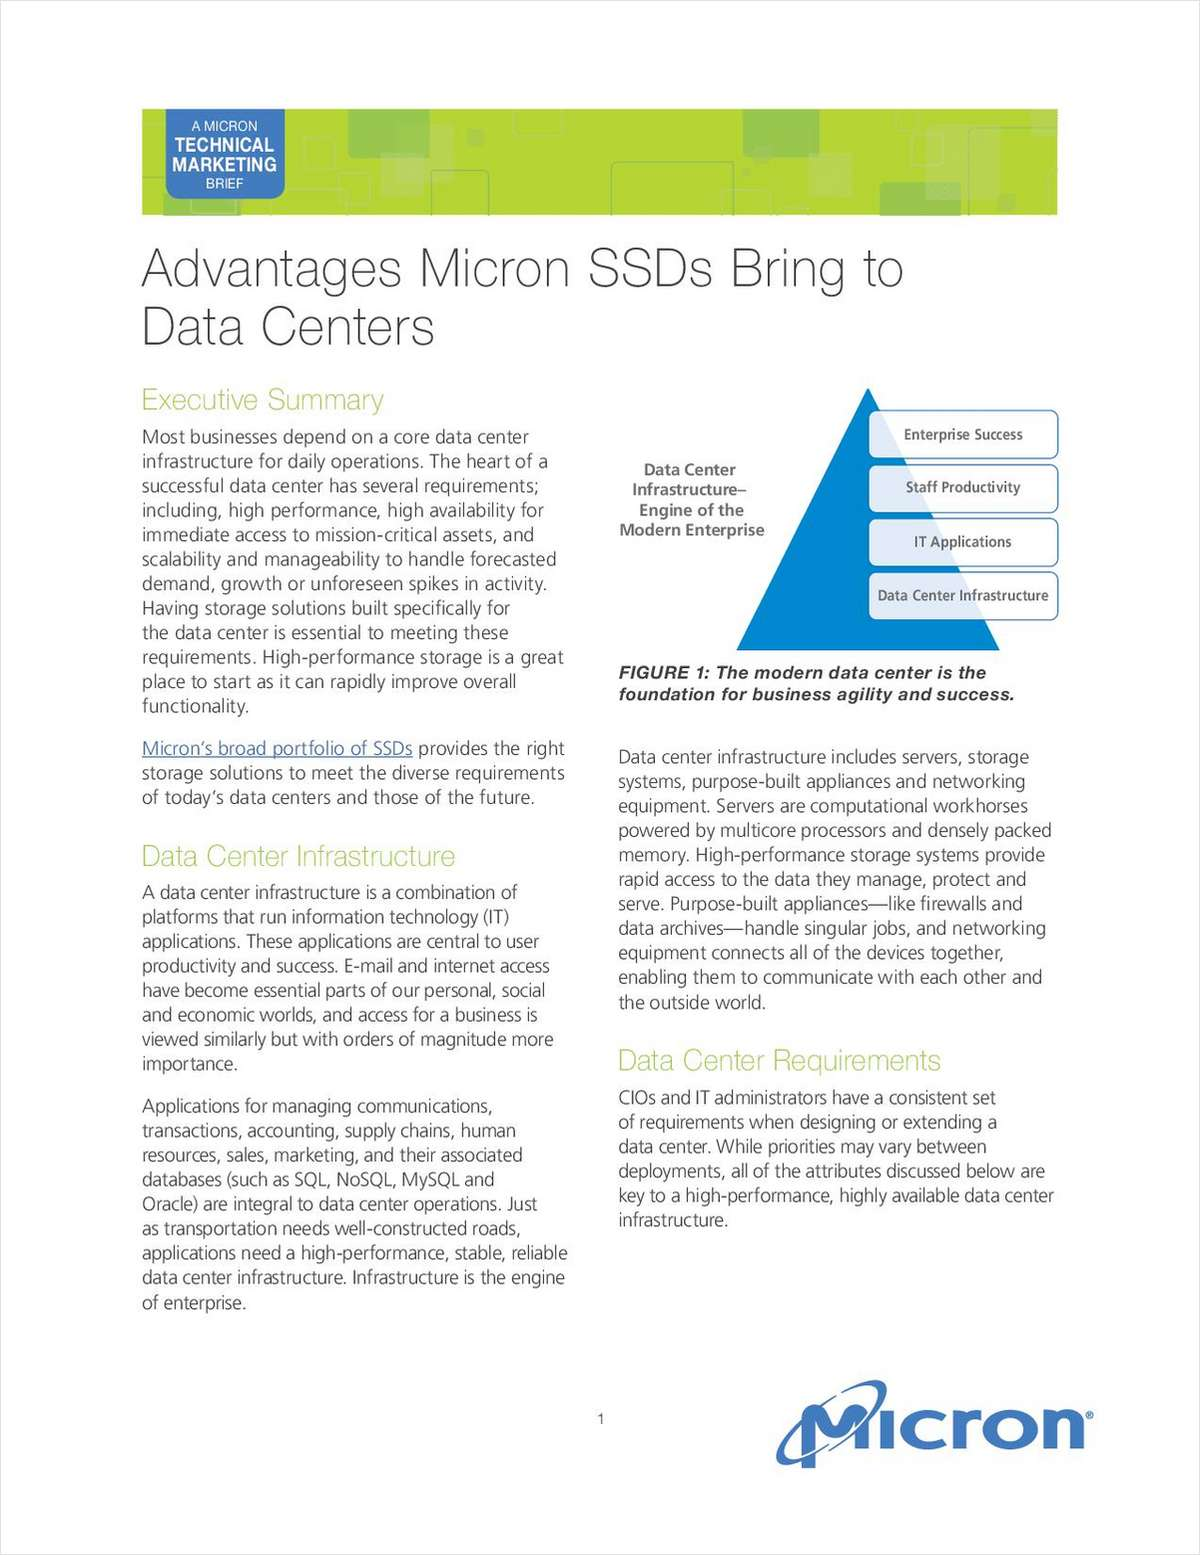 Advantages Micron SSDs Bring to Data Centers